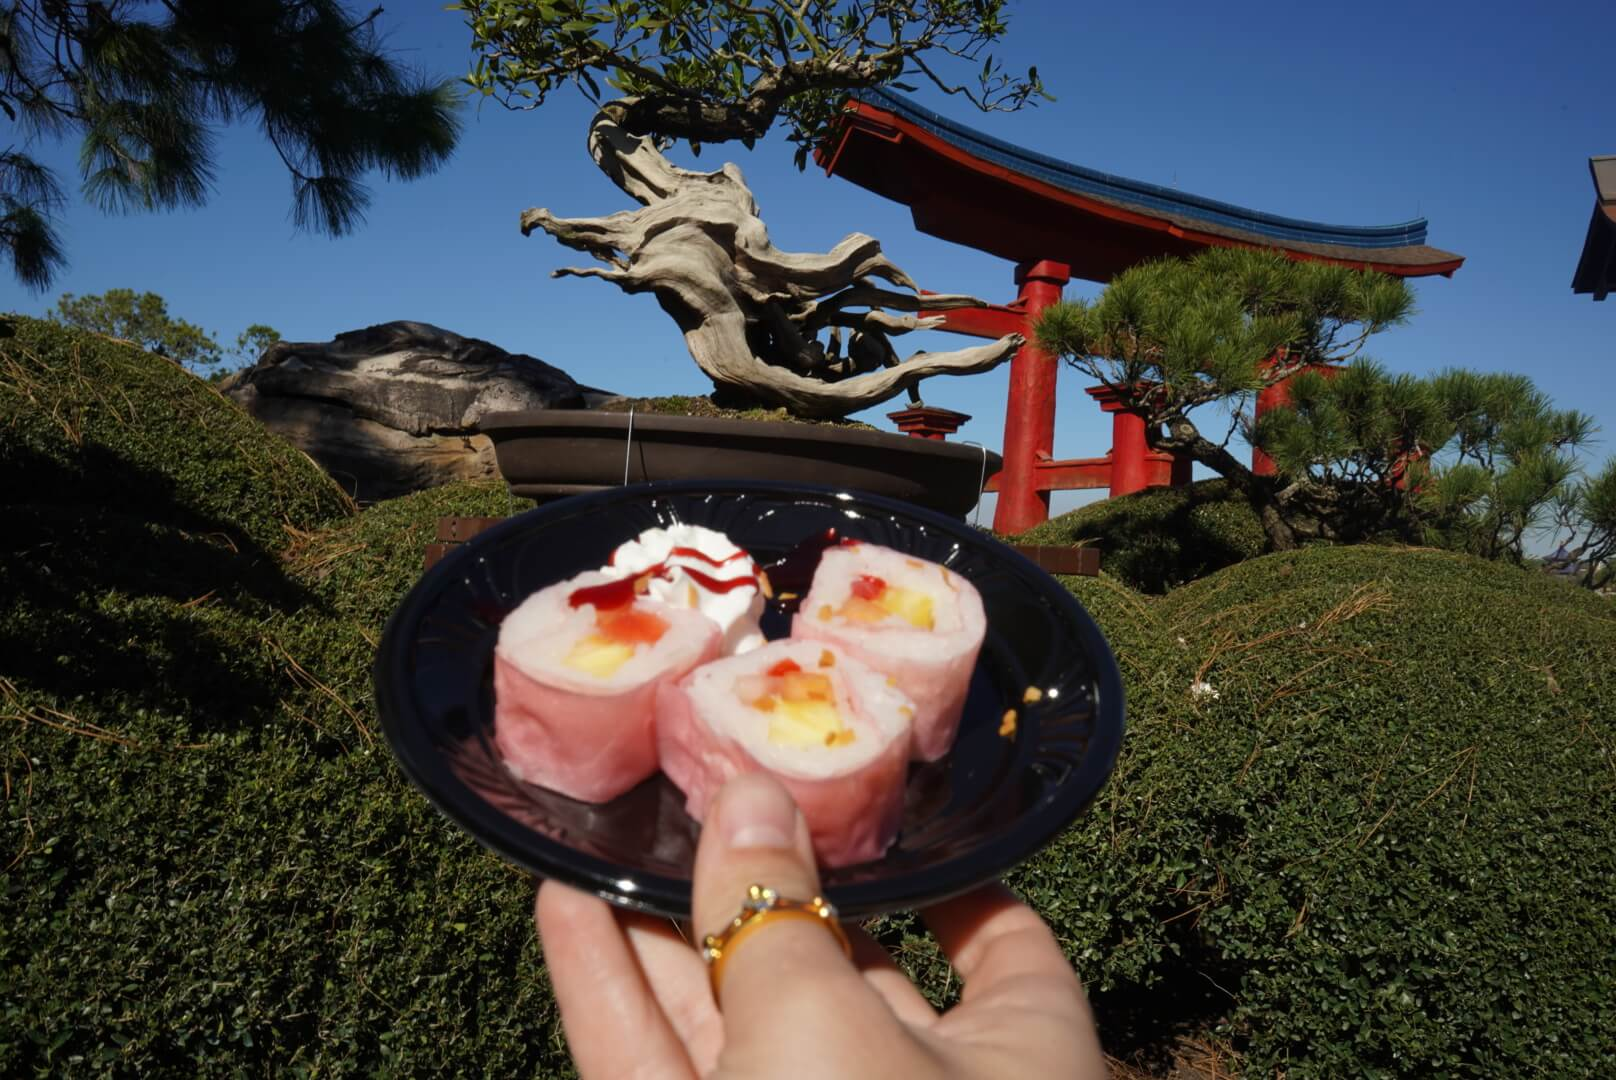 Frushi from Hanami Japan at Epcot Flower and Garden Festival 2019